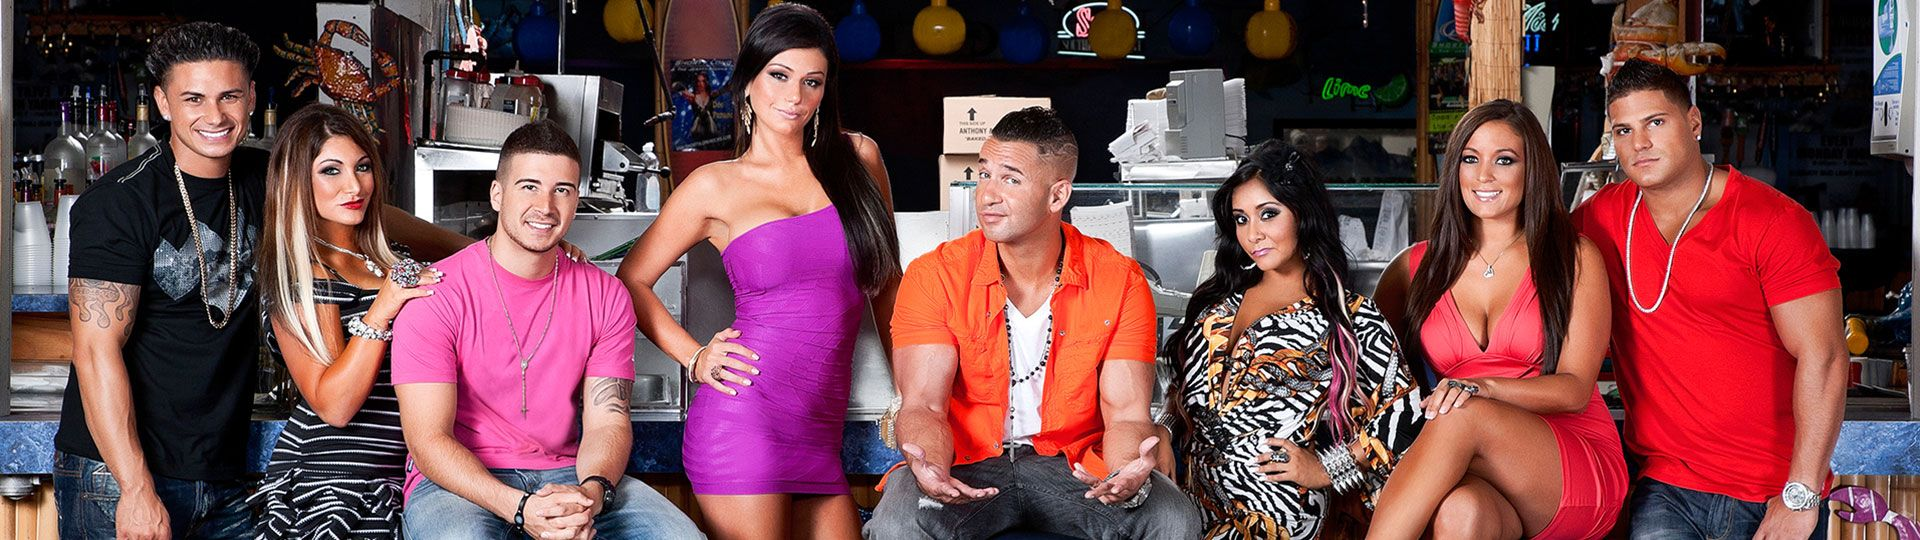 jersey shore season 6 episode 1